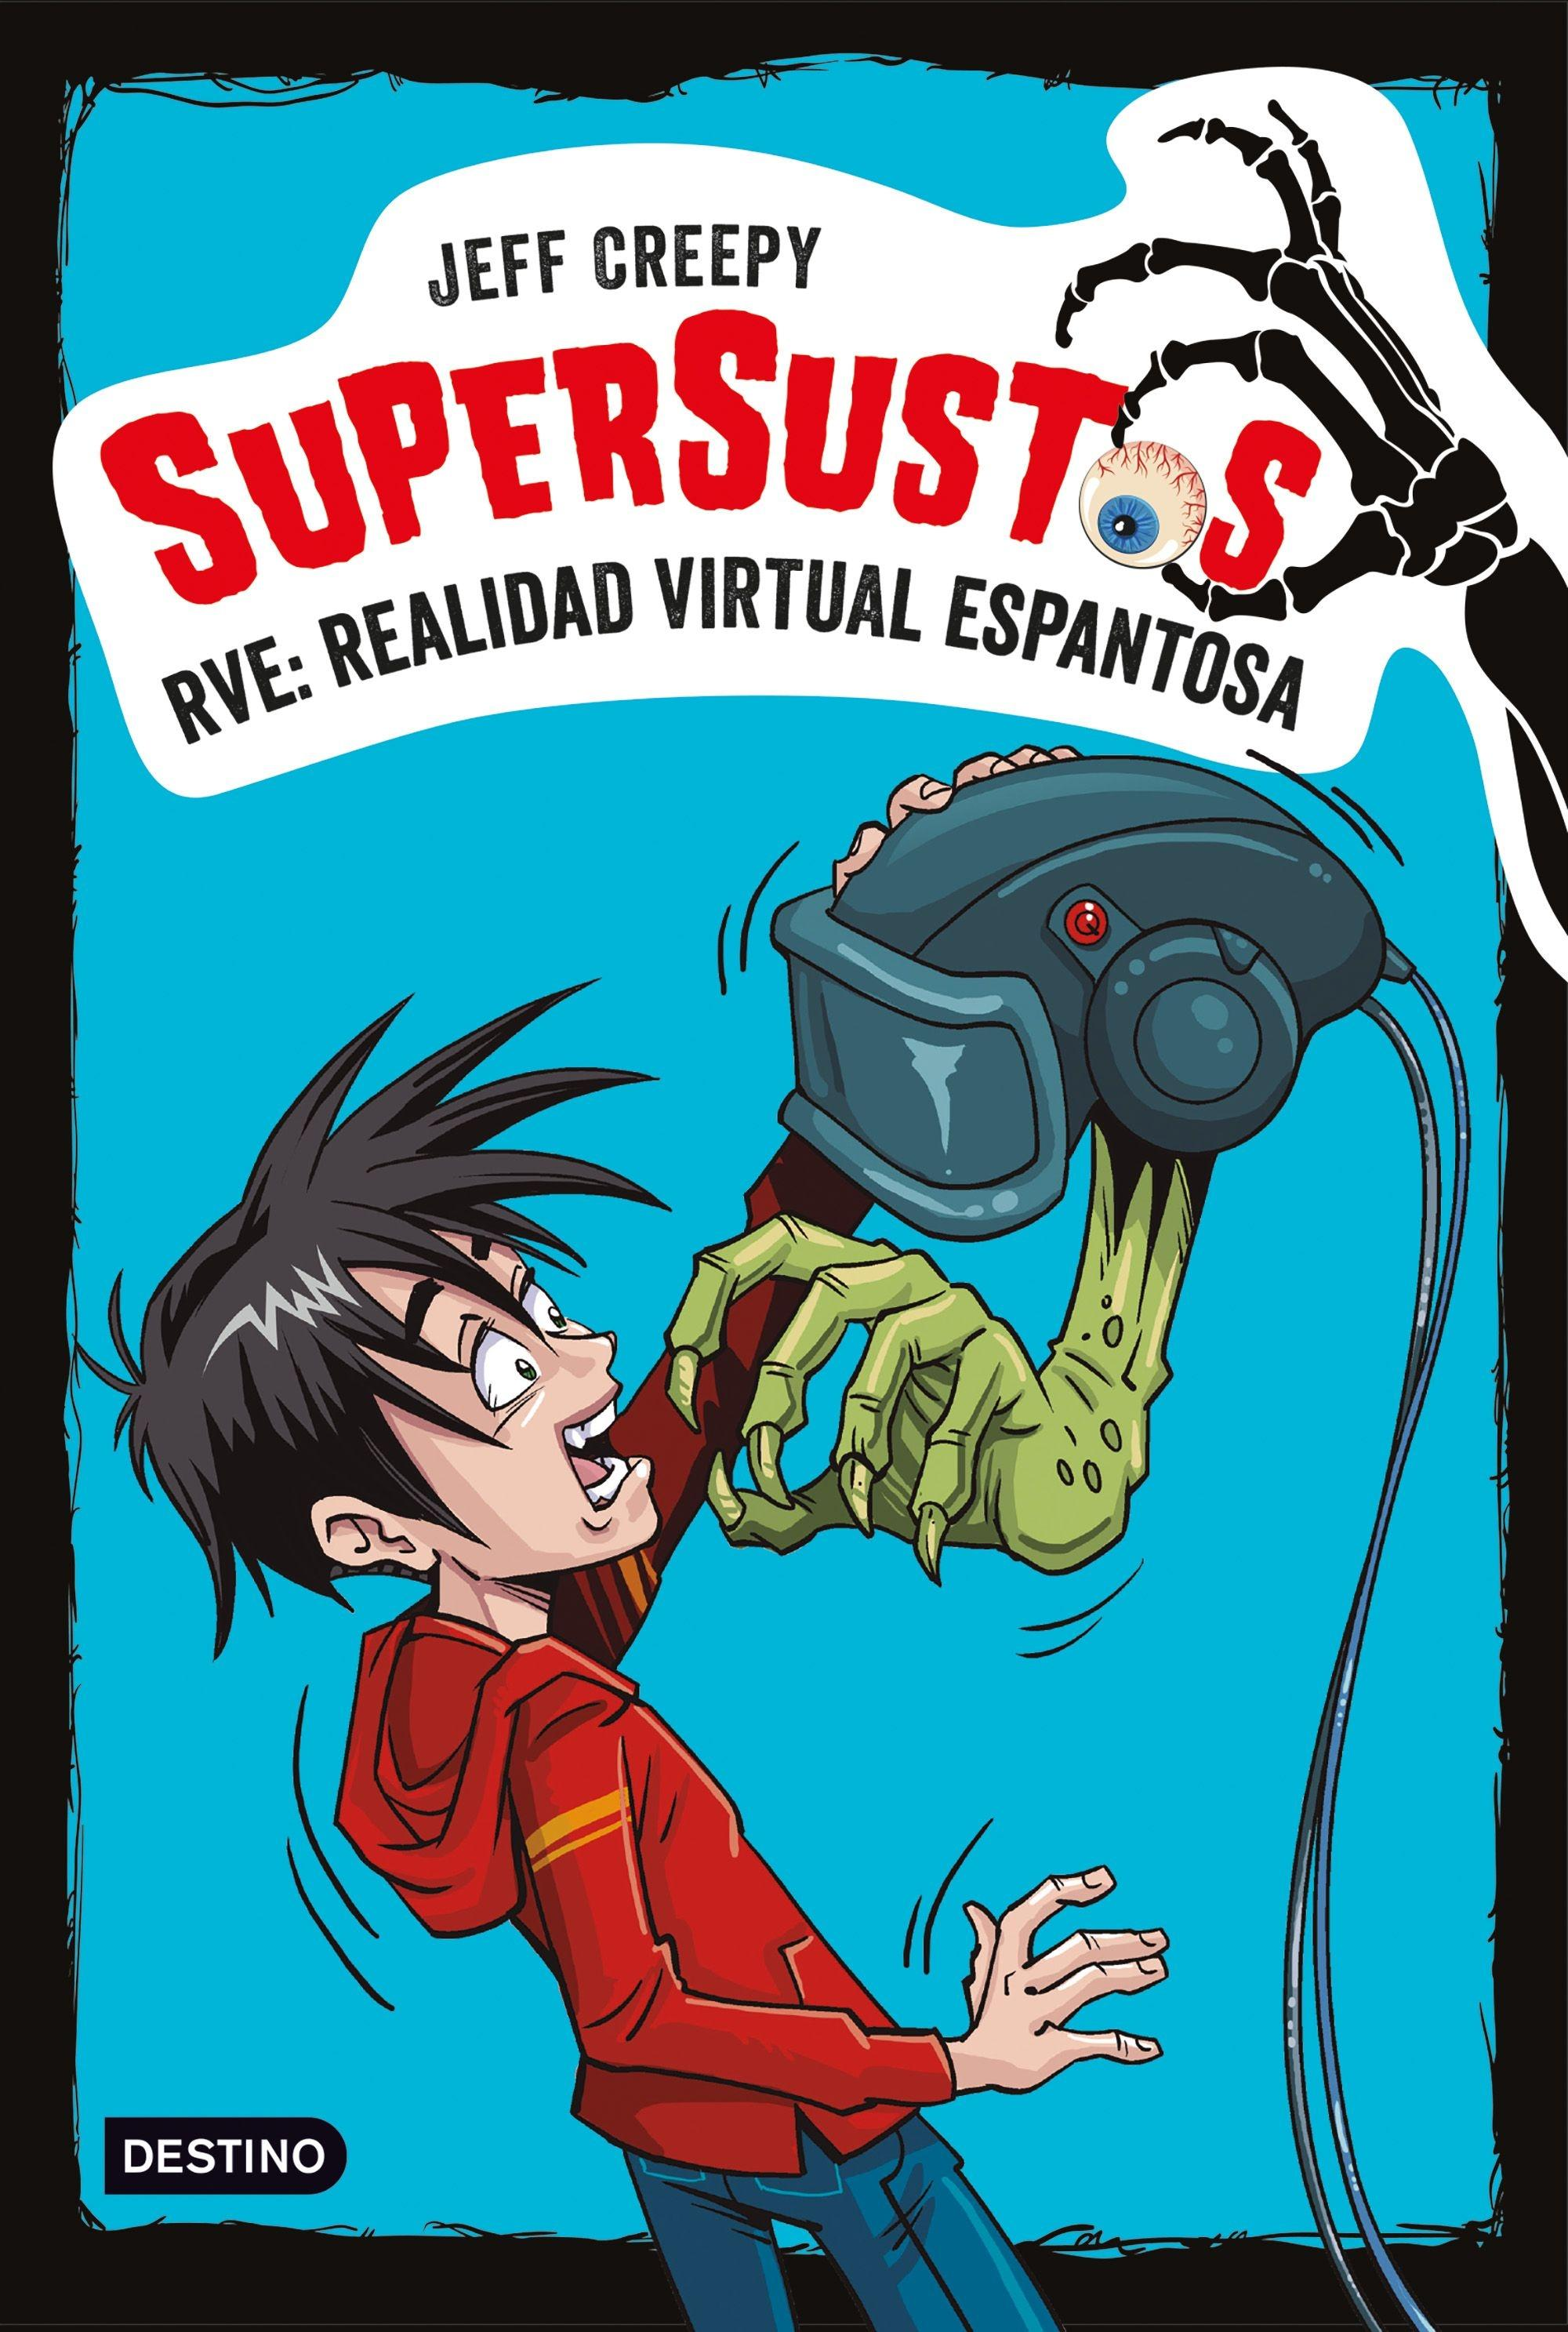 SUPERSUSTOS. RVE: REALIDAD VIRTUAL ESPANTOSA